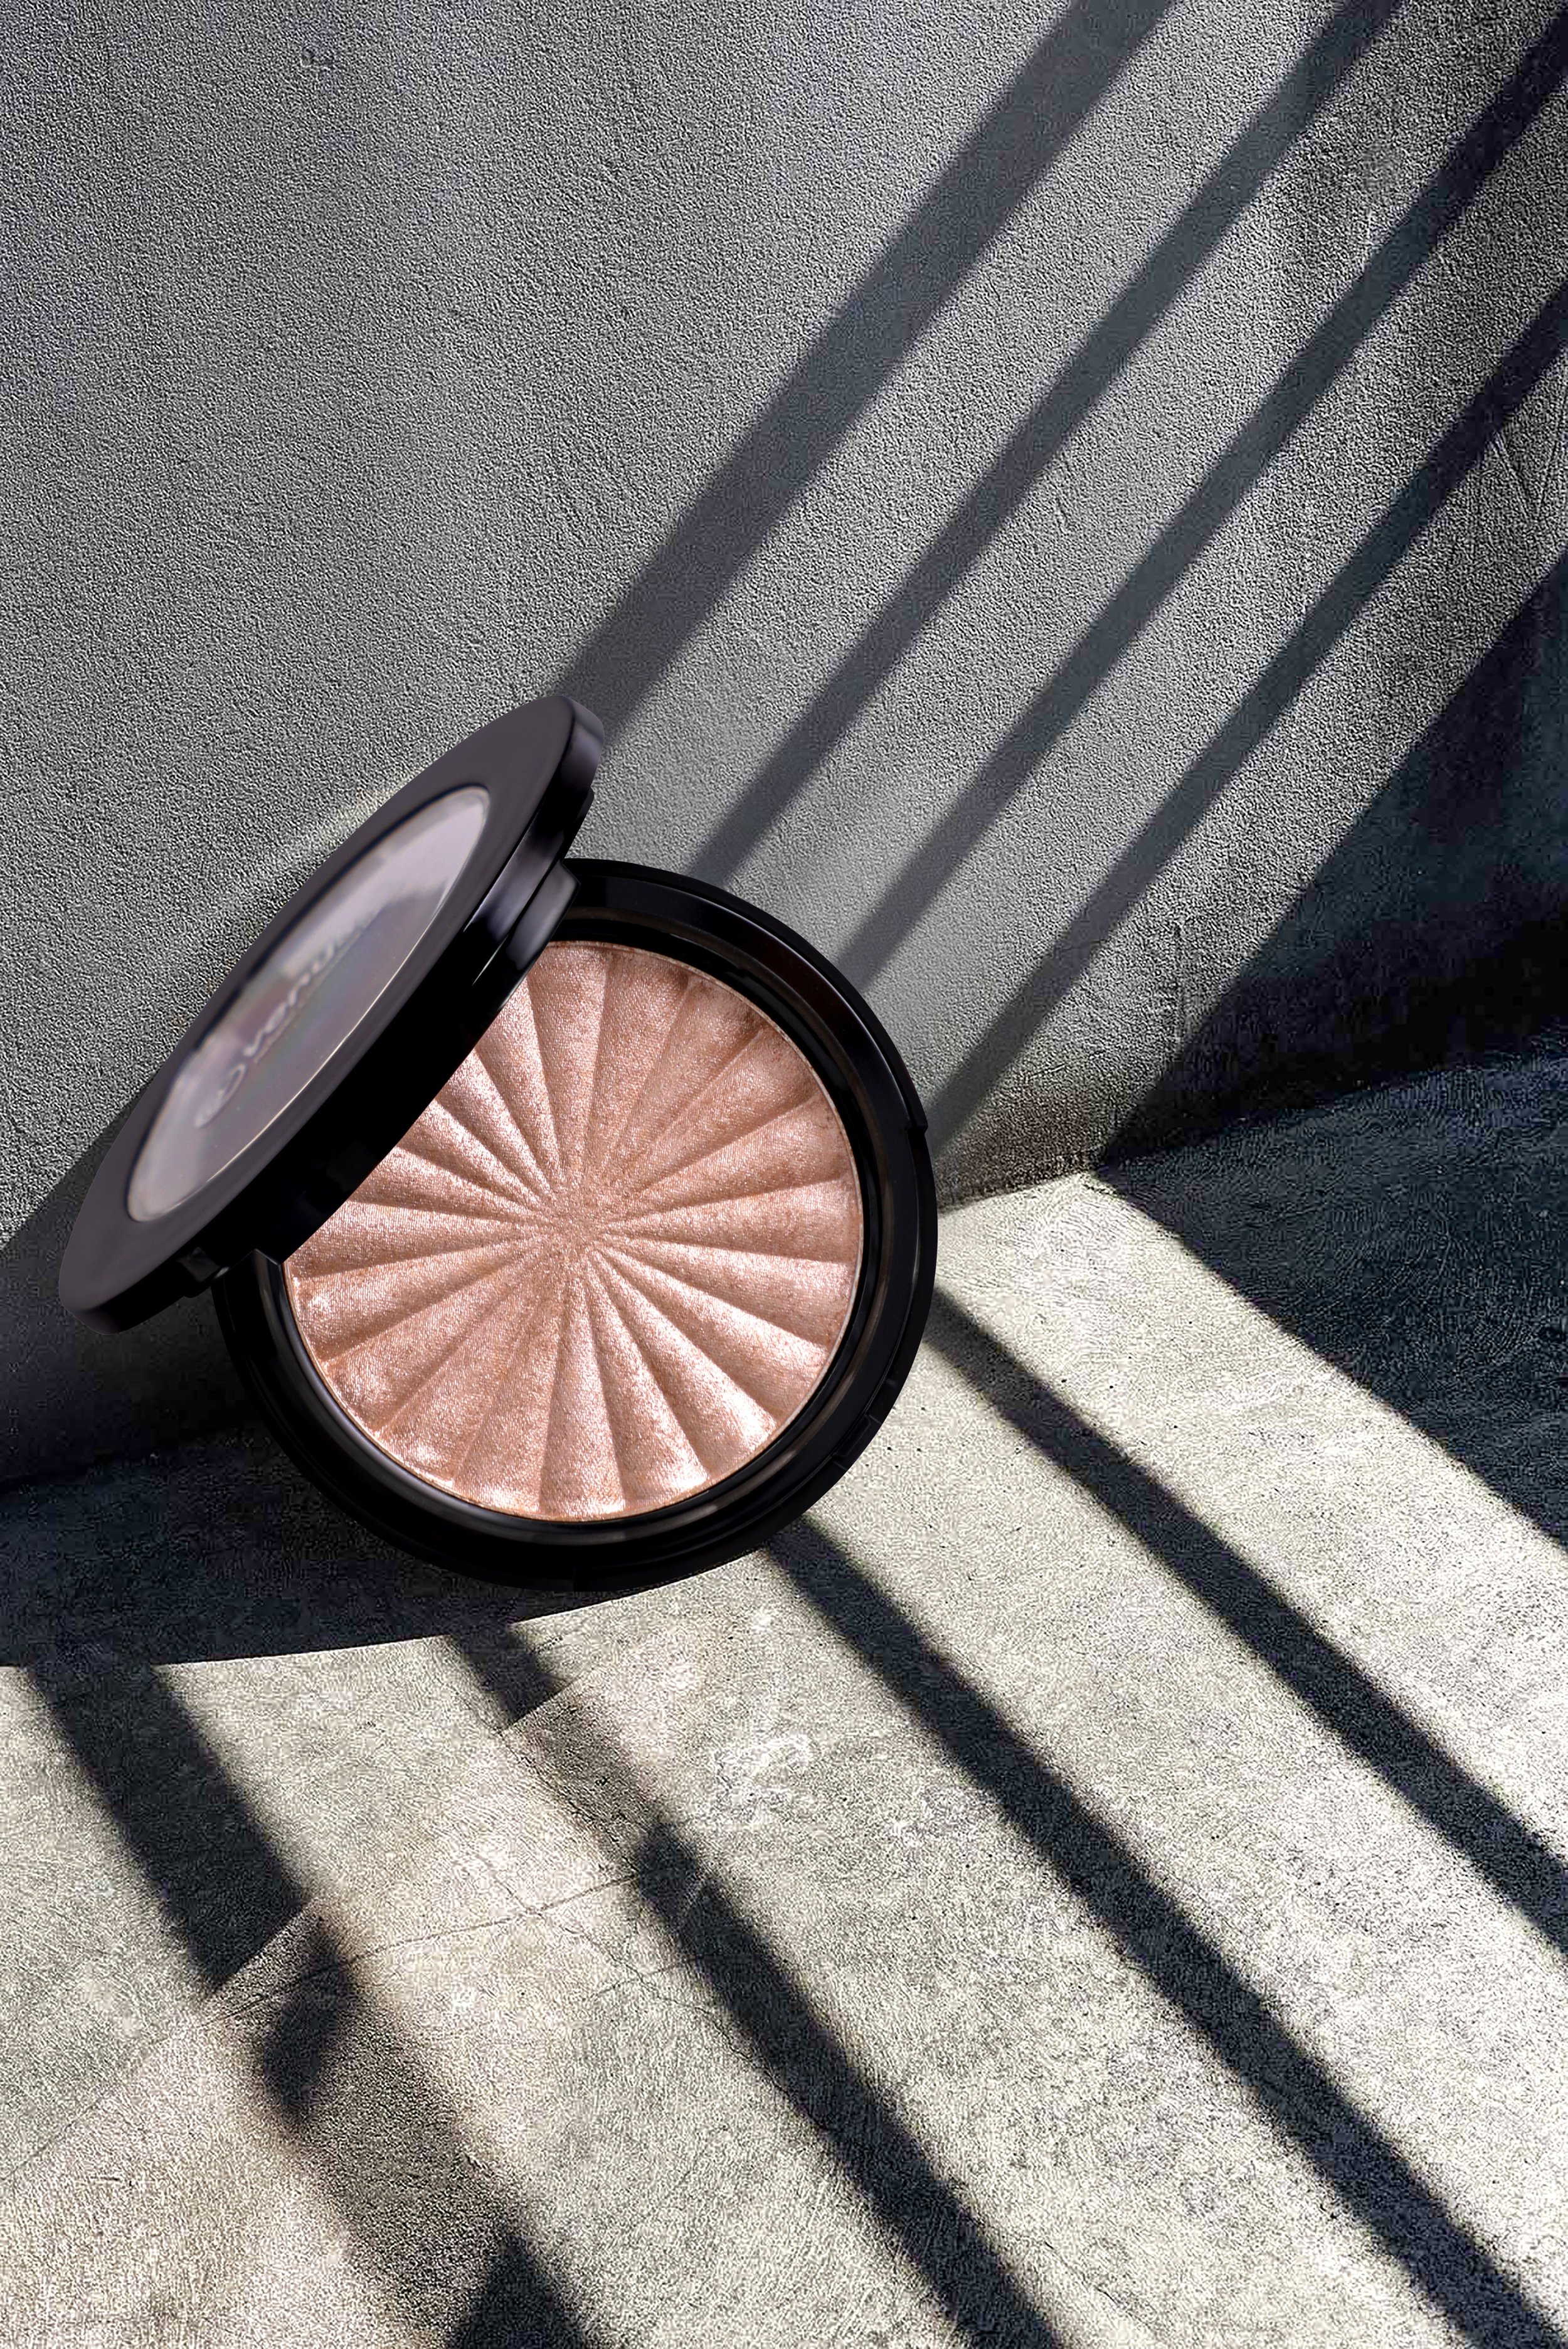 beauty-product-compact-powder-cosmetic-2655096.jpg